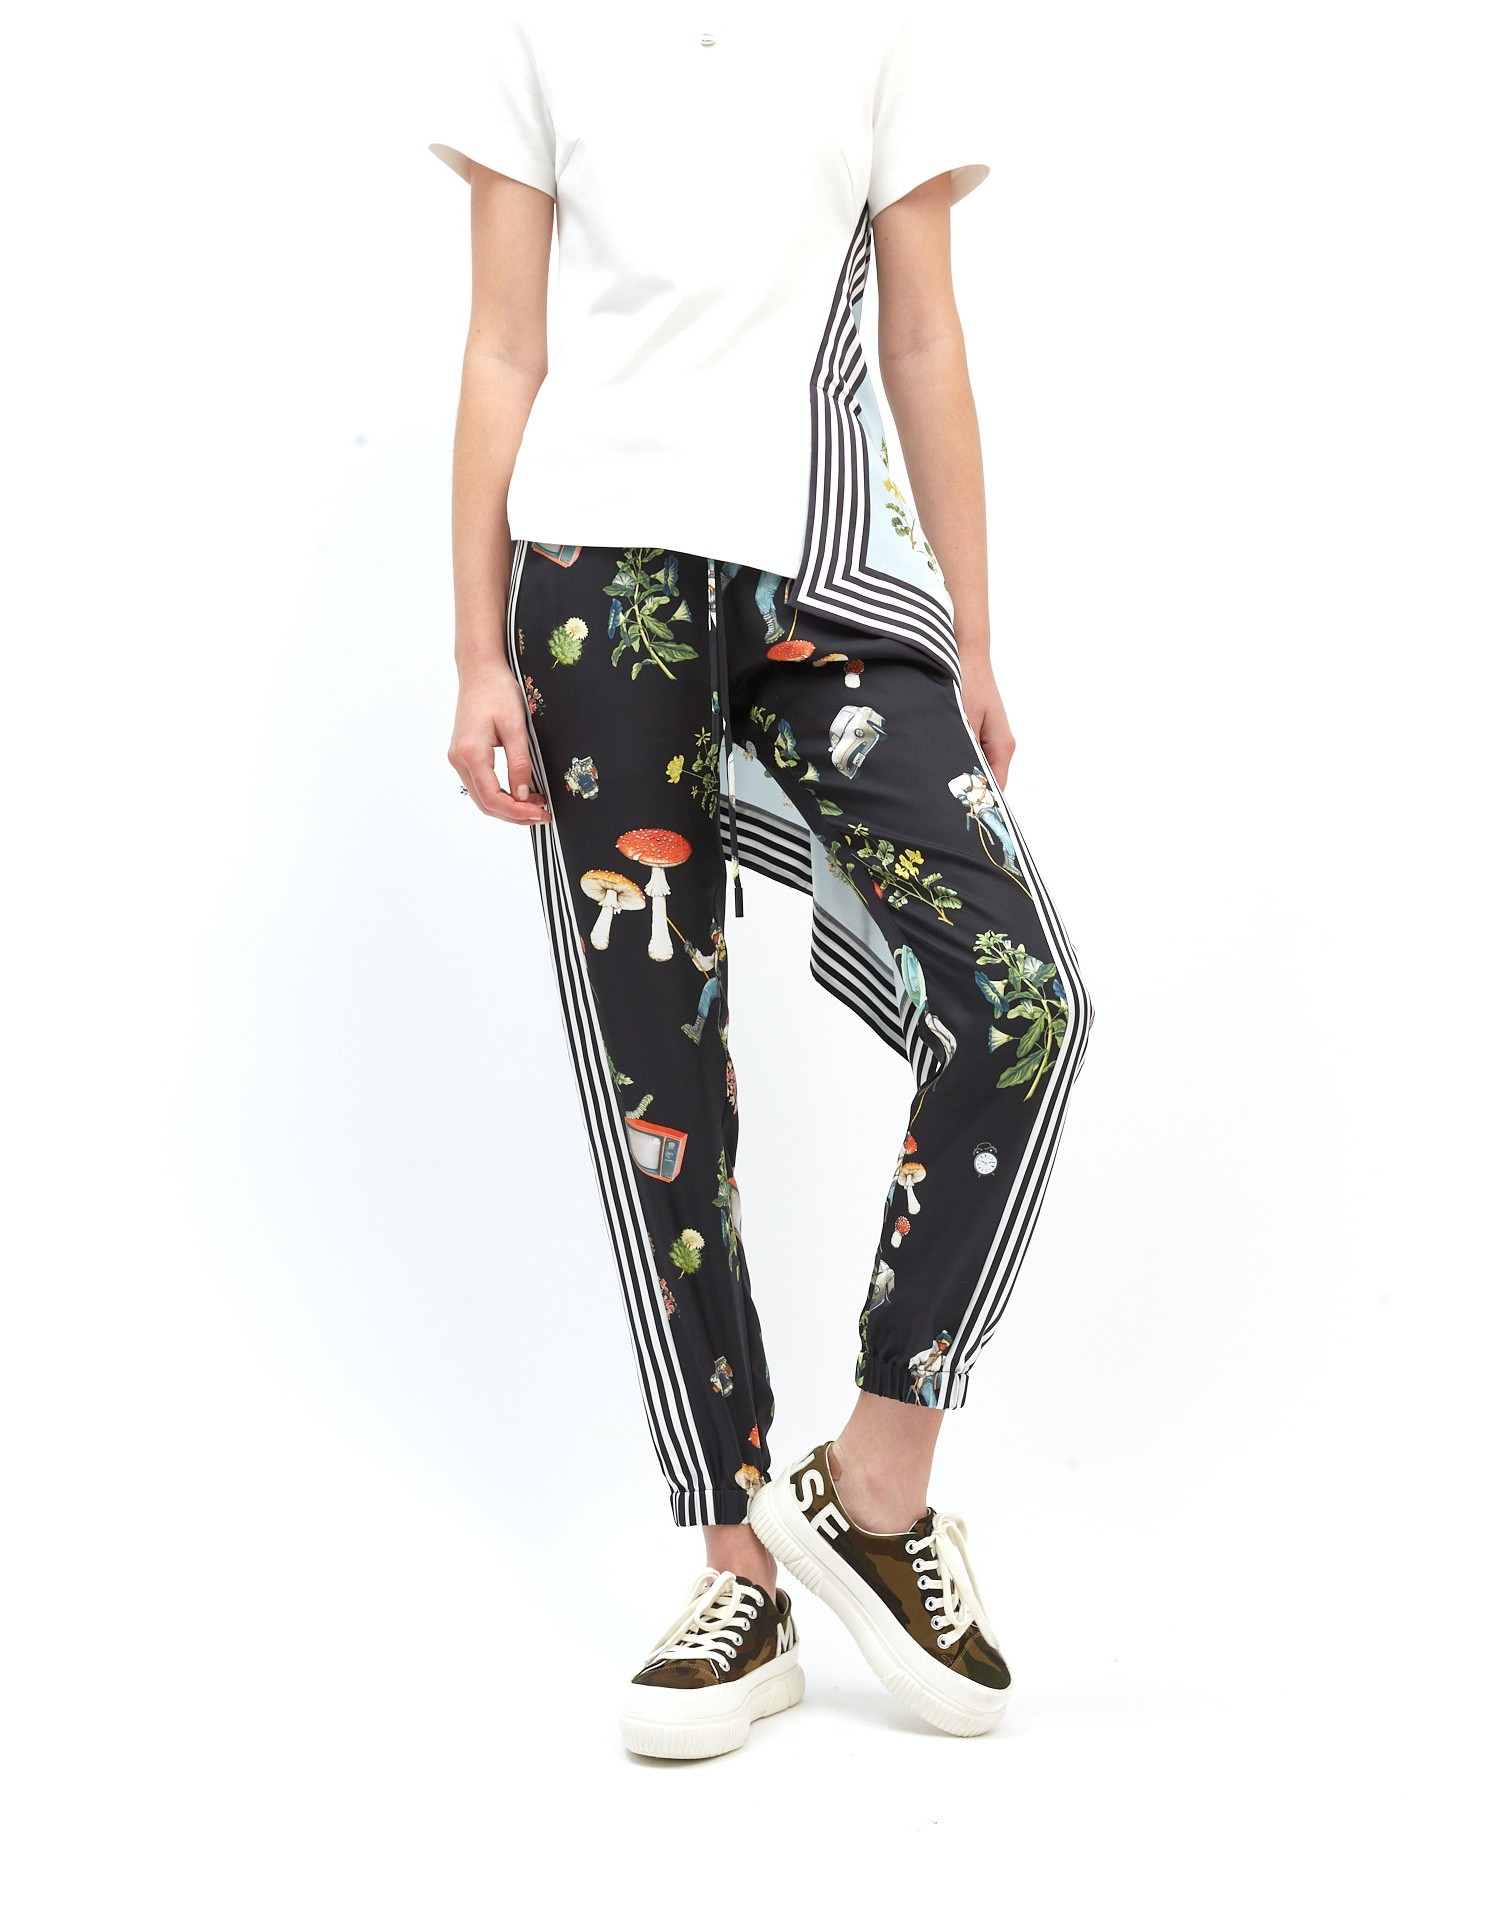 MONSE Climbing High Jogger Pant on Model Full Front View